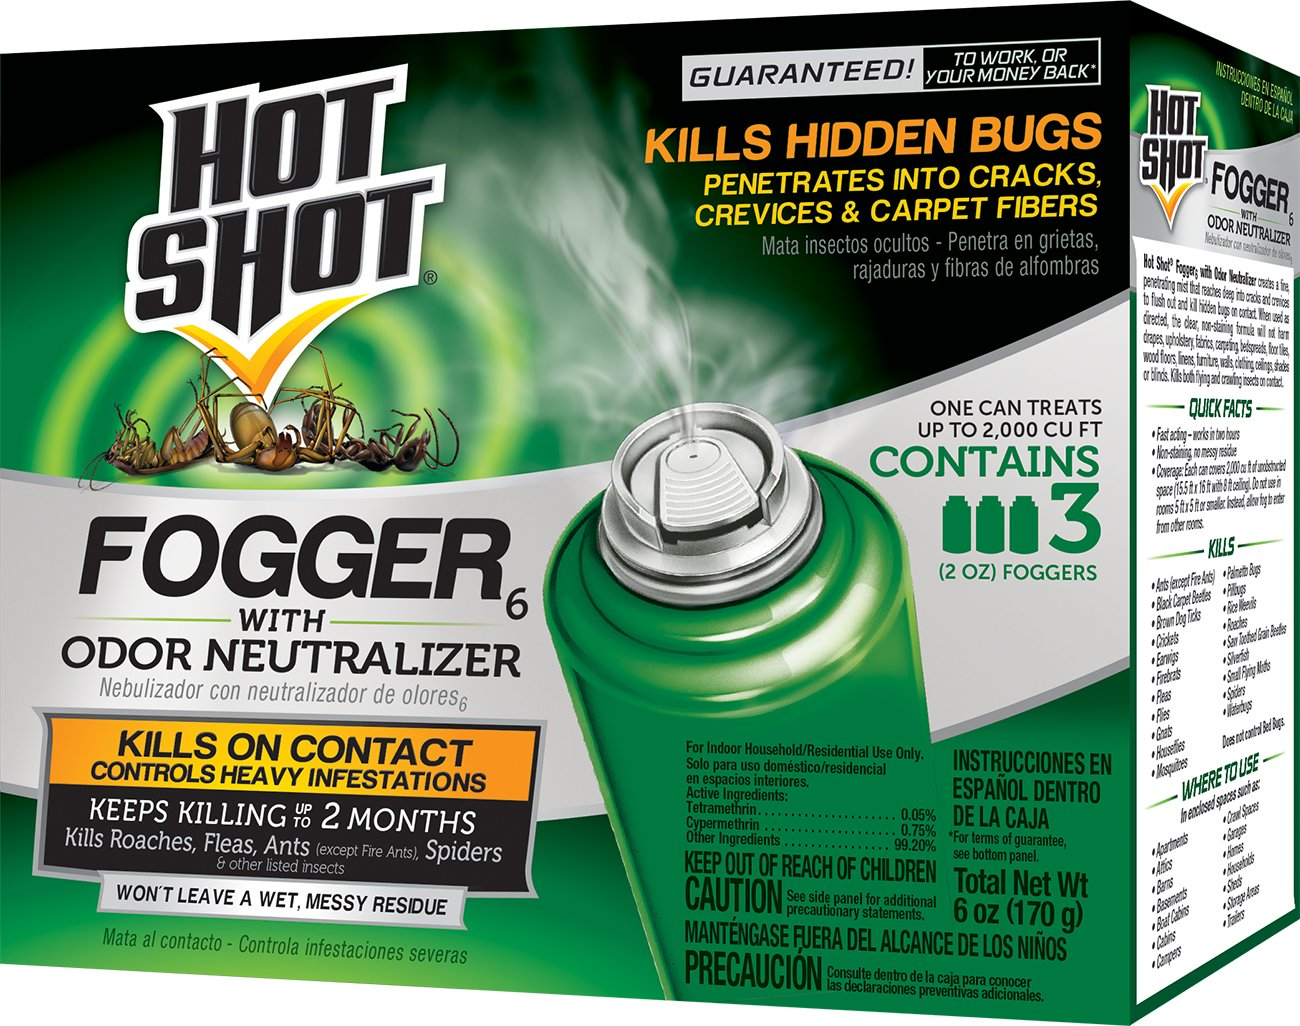 Hot Shot HG-96180 Fogger With Odor Neutralizer, Aerosol, 3/2-Ounce, Pack of 12 by Hot Shot